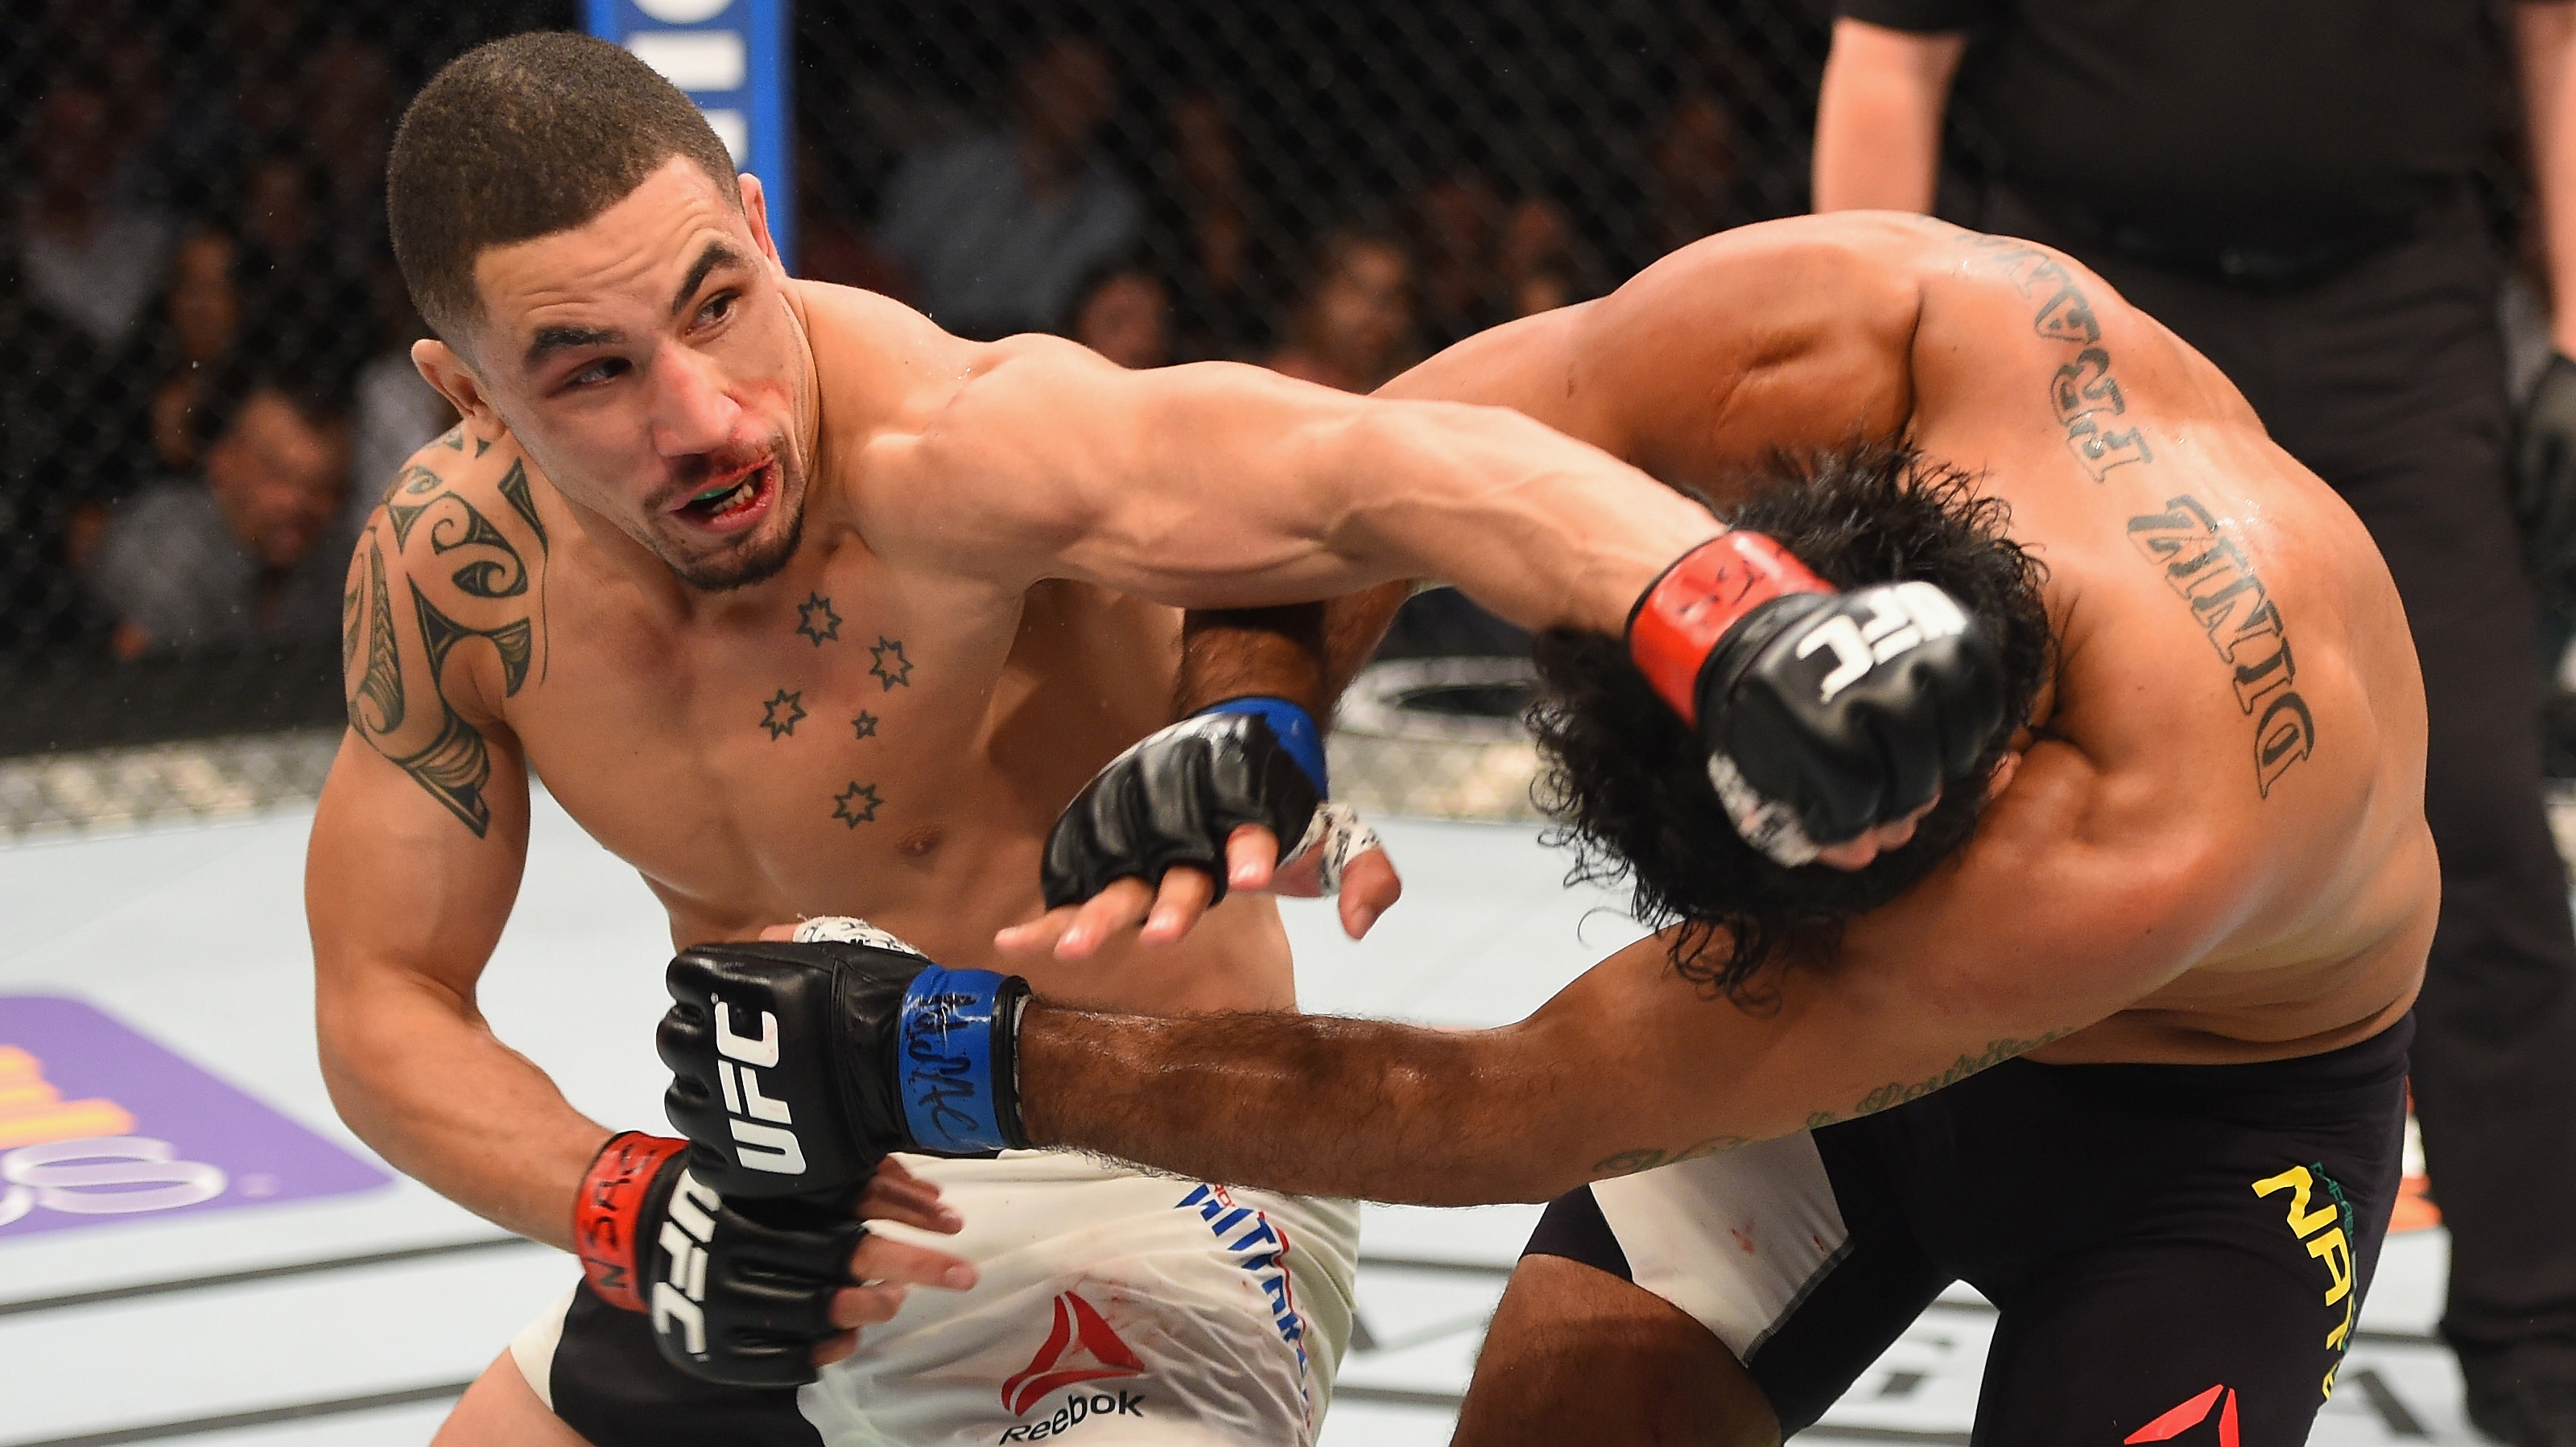 Robert Whittaker punches &lt;a href='../fighter/rafael-natal'&gt;<a href='../fighter/rafael-natal'>Rafael Natal</a>&lt;/a&gt; during his most recent win at UFC 197